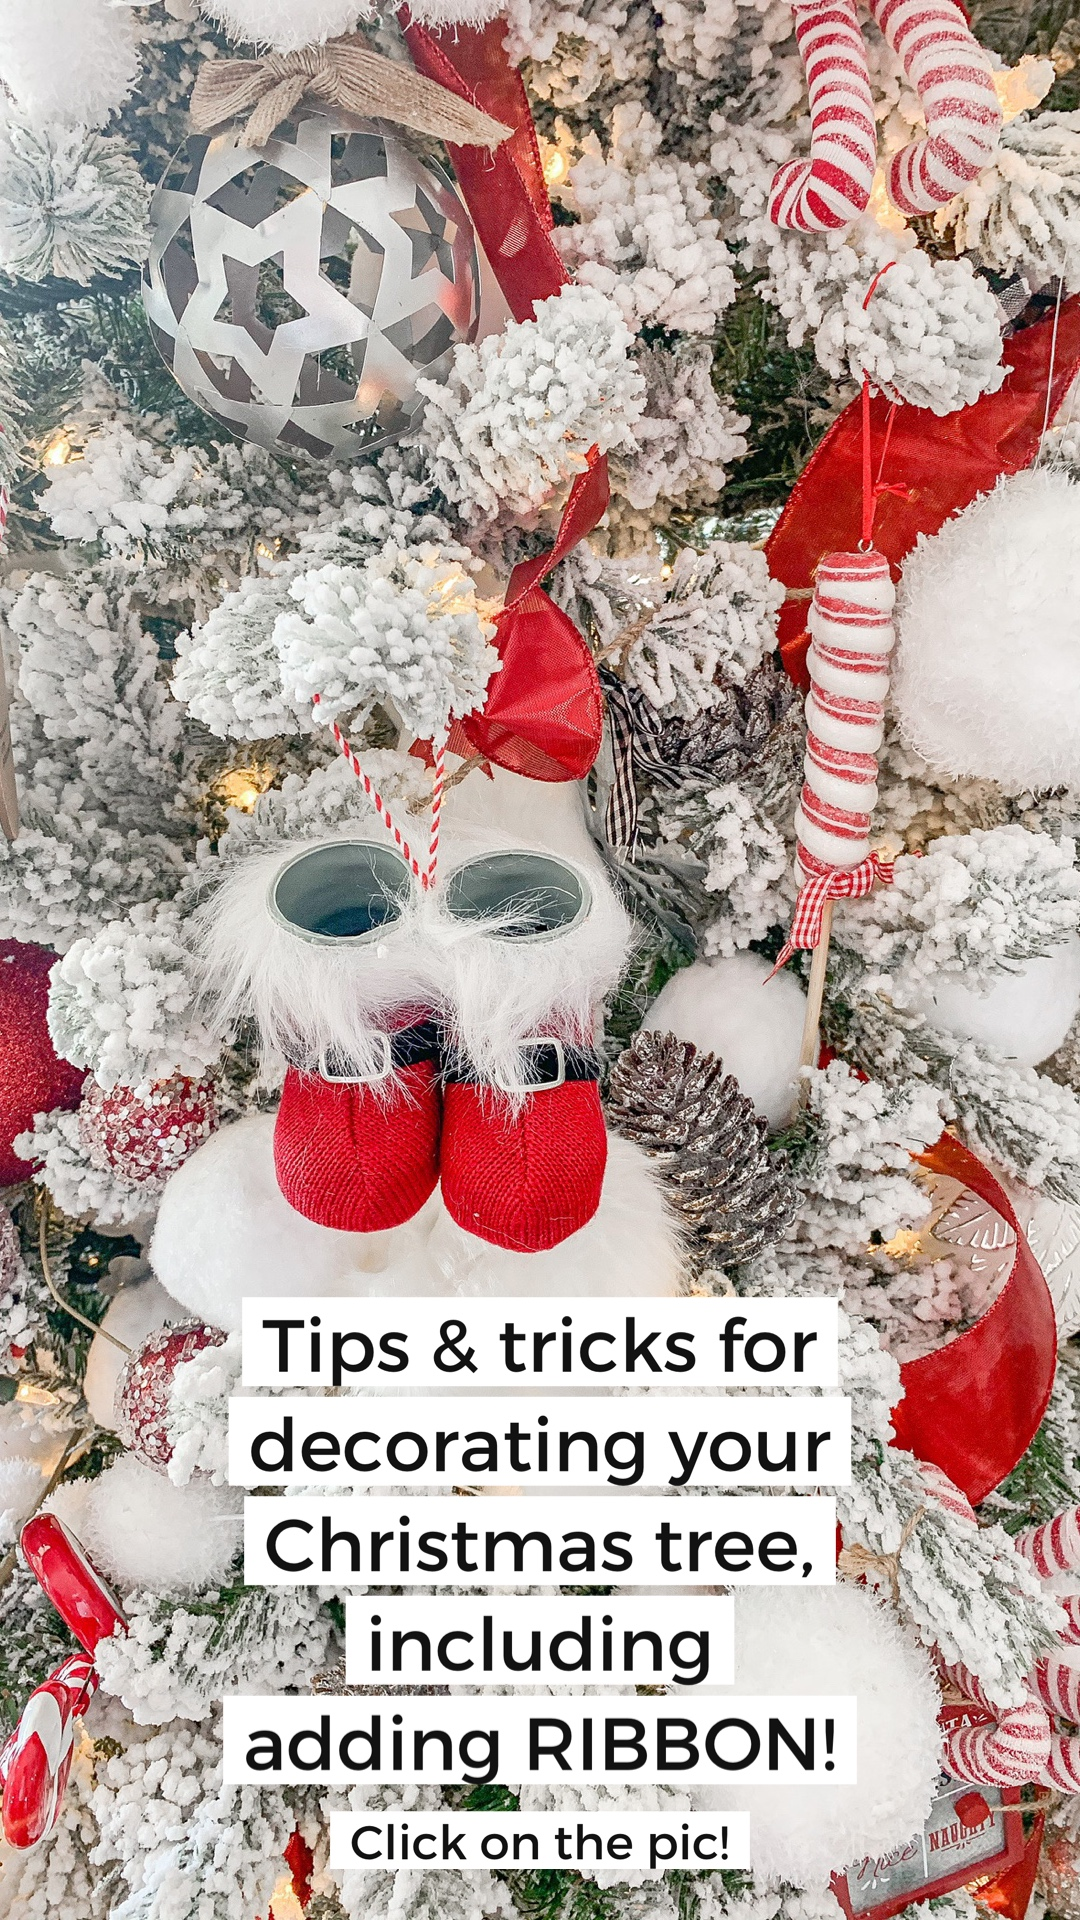 Tips for decorating your flocked Christmas tree with ribbon and ornaments. Christmas decor, decorating, interior design, Christms tree ribbon.